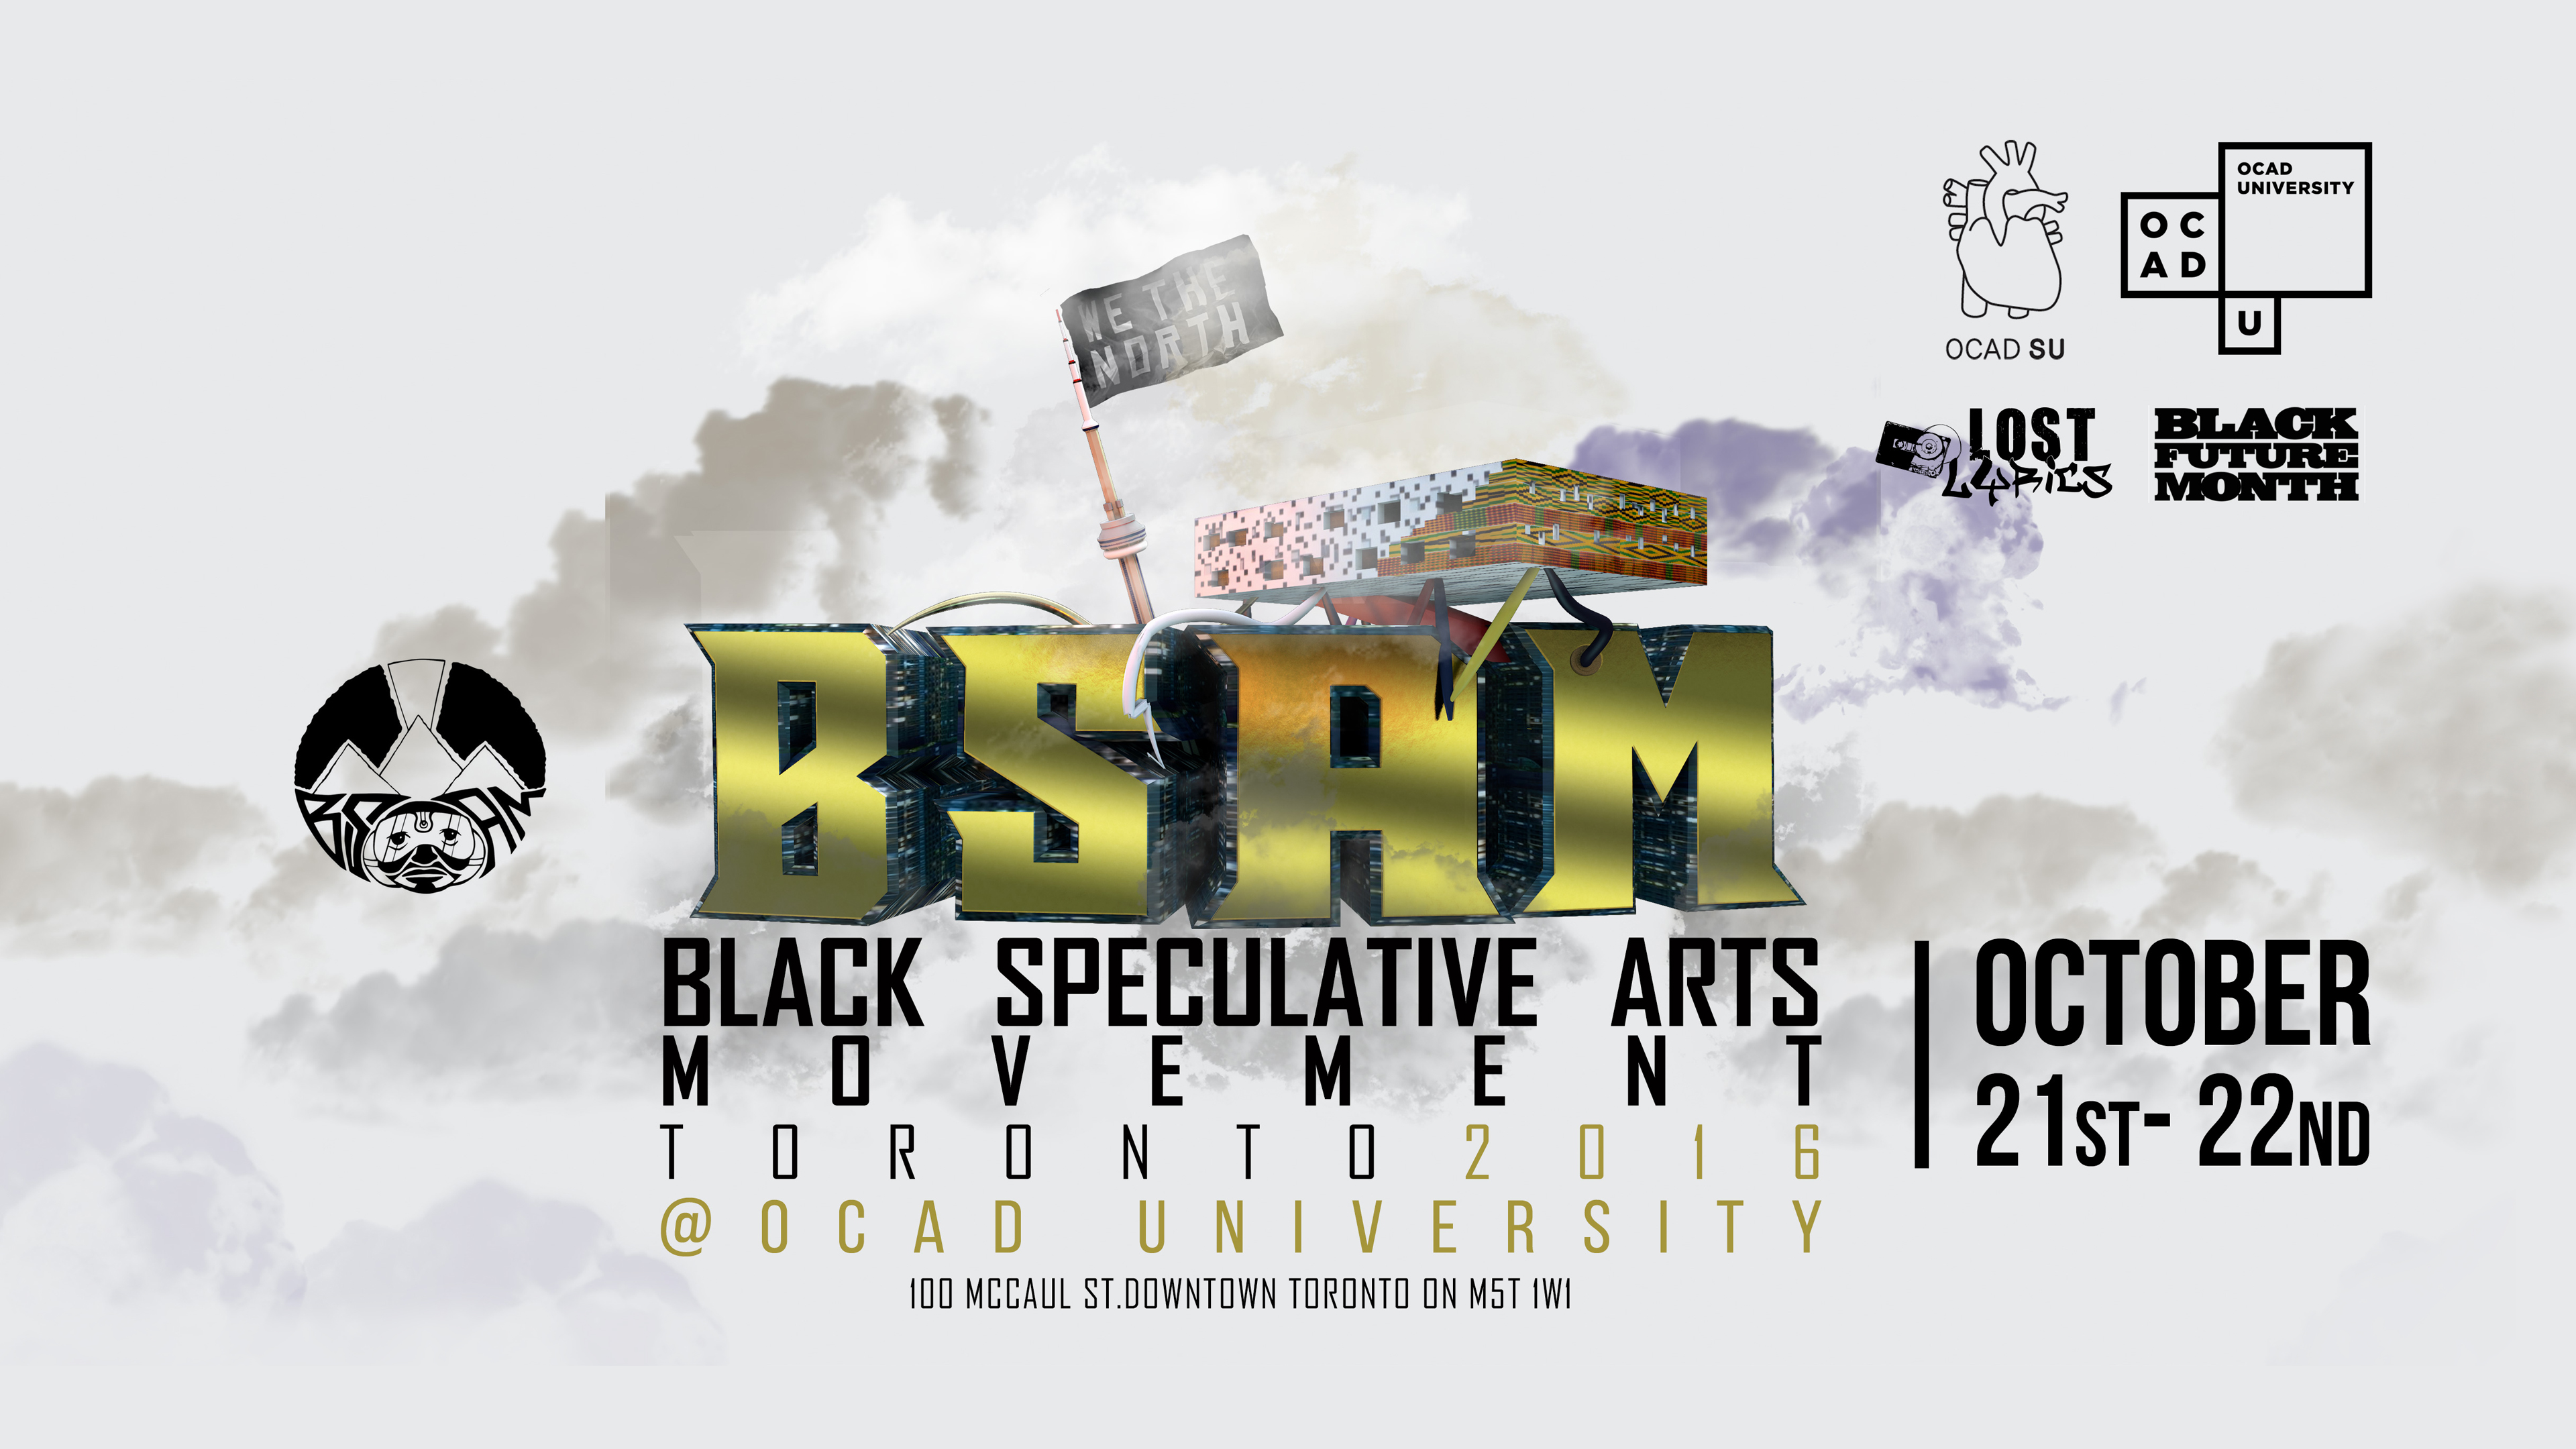 Black Speculative Arts Movement poster with event info